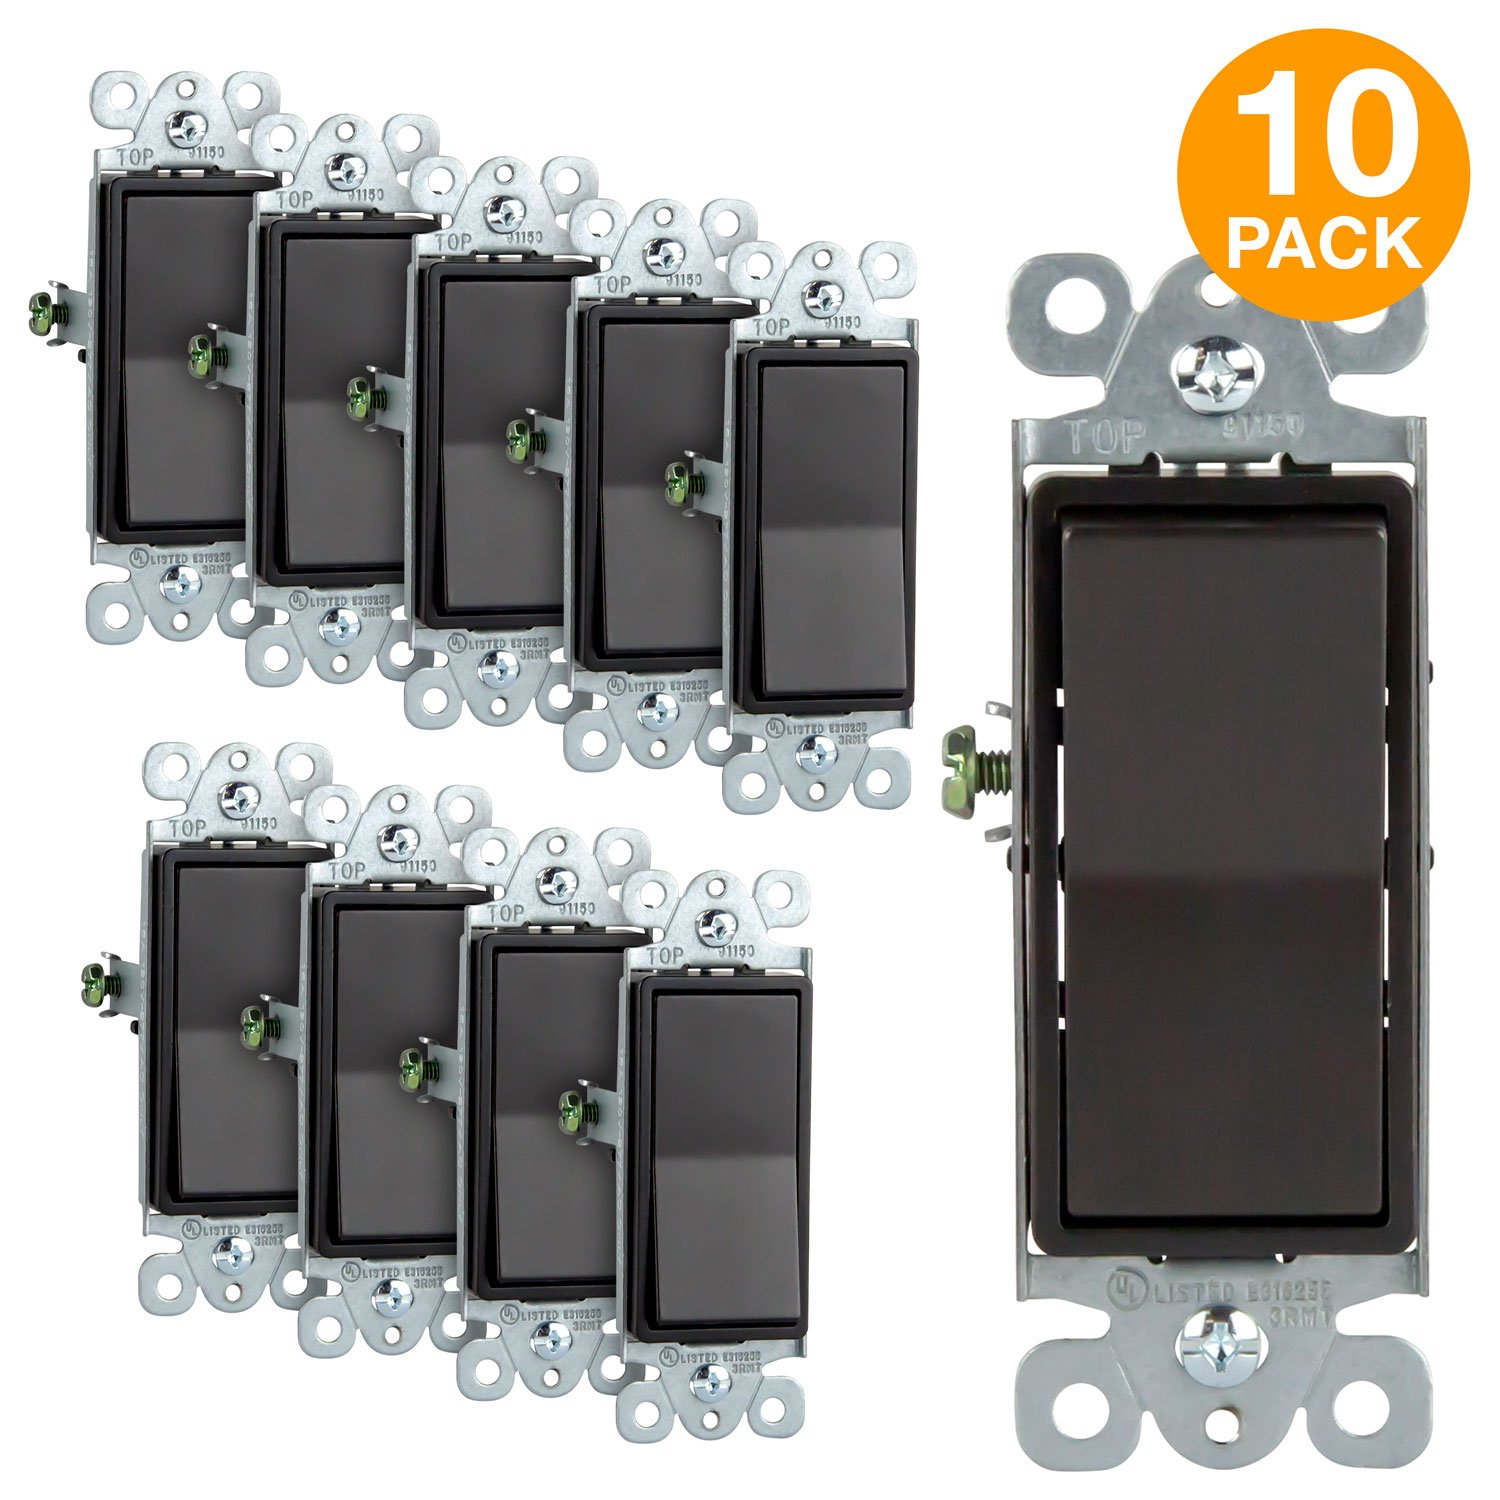 Enerlites Light Switch On/Off Paddle Wall Switch 91150-DB | 15 Amp, 120V/277V, AC, Single Pole, 3 Wire, Grounding Screw, Residential Grade Light Switch, UL Listed | Dark Bronze, 10 Pack